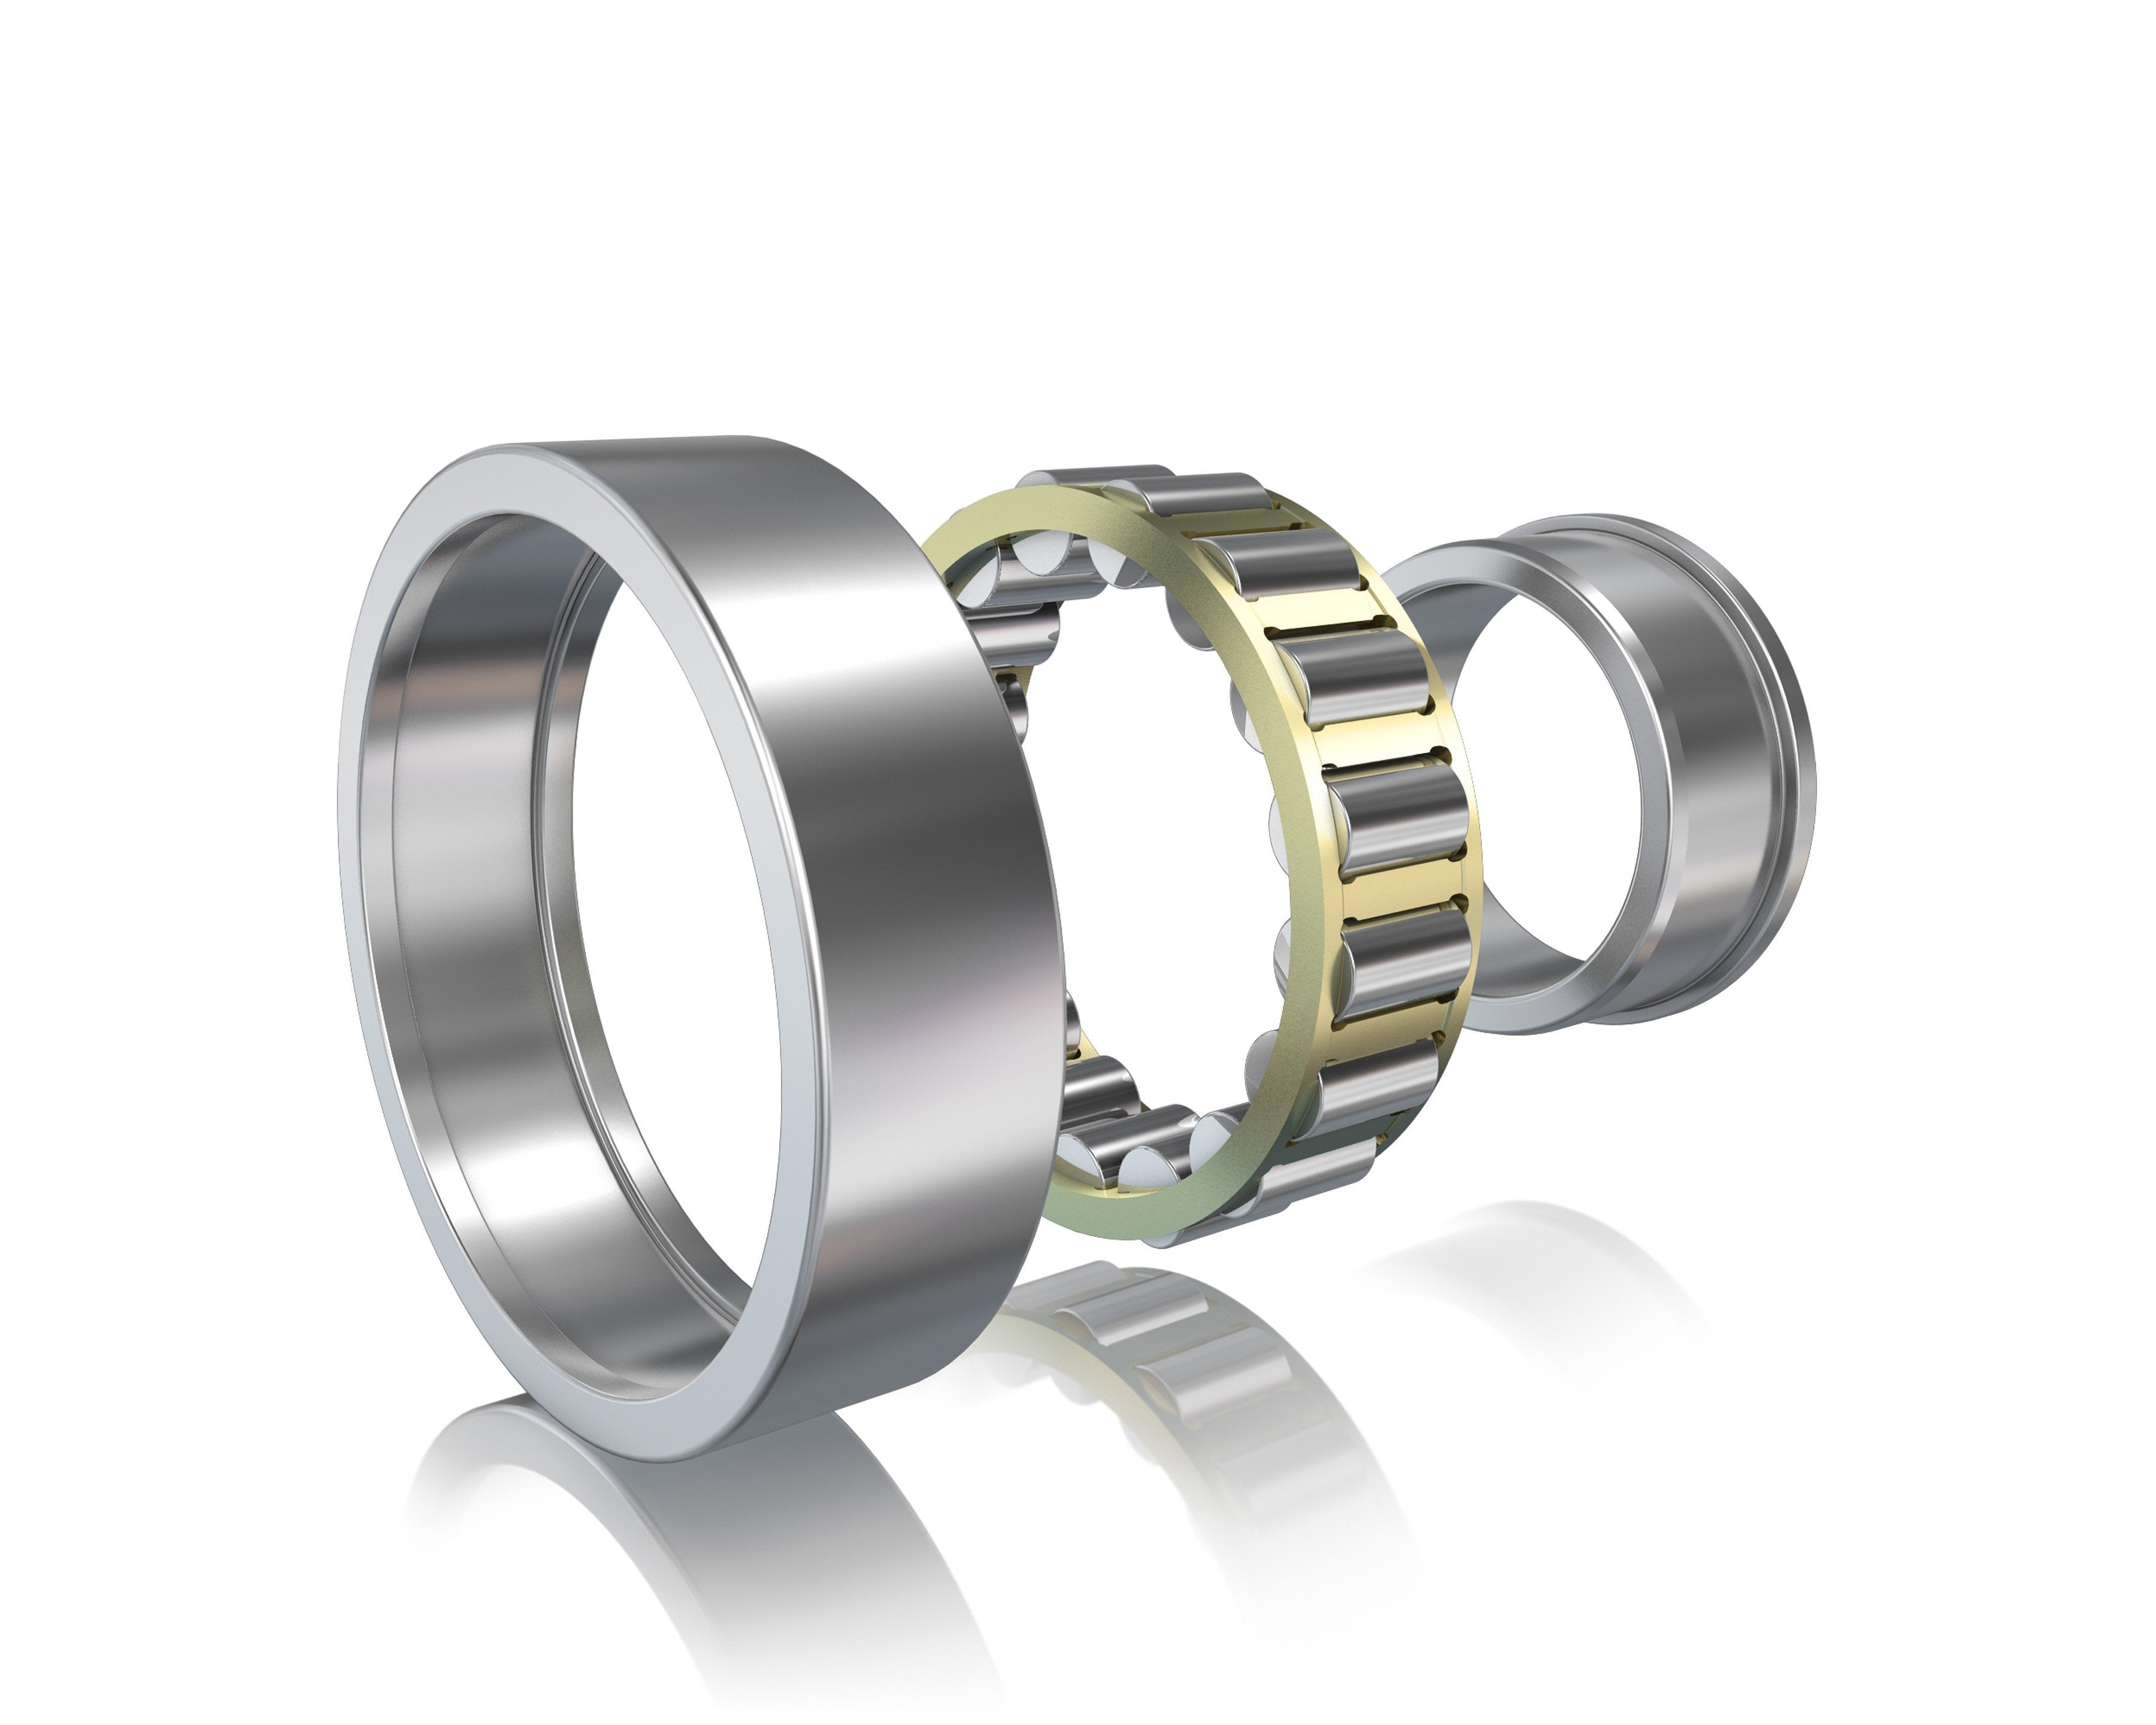 NU2314-EM-NSK, Bearings, Cylindrical roller bearings